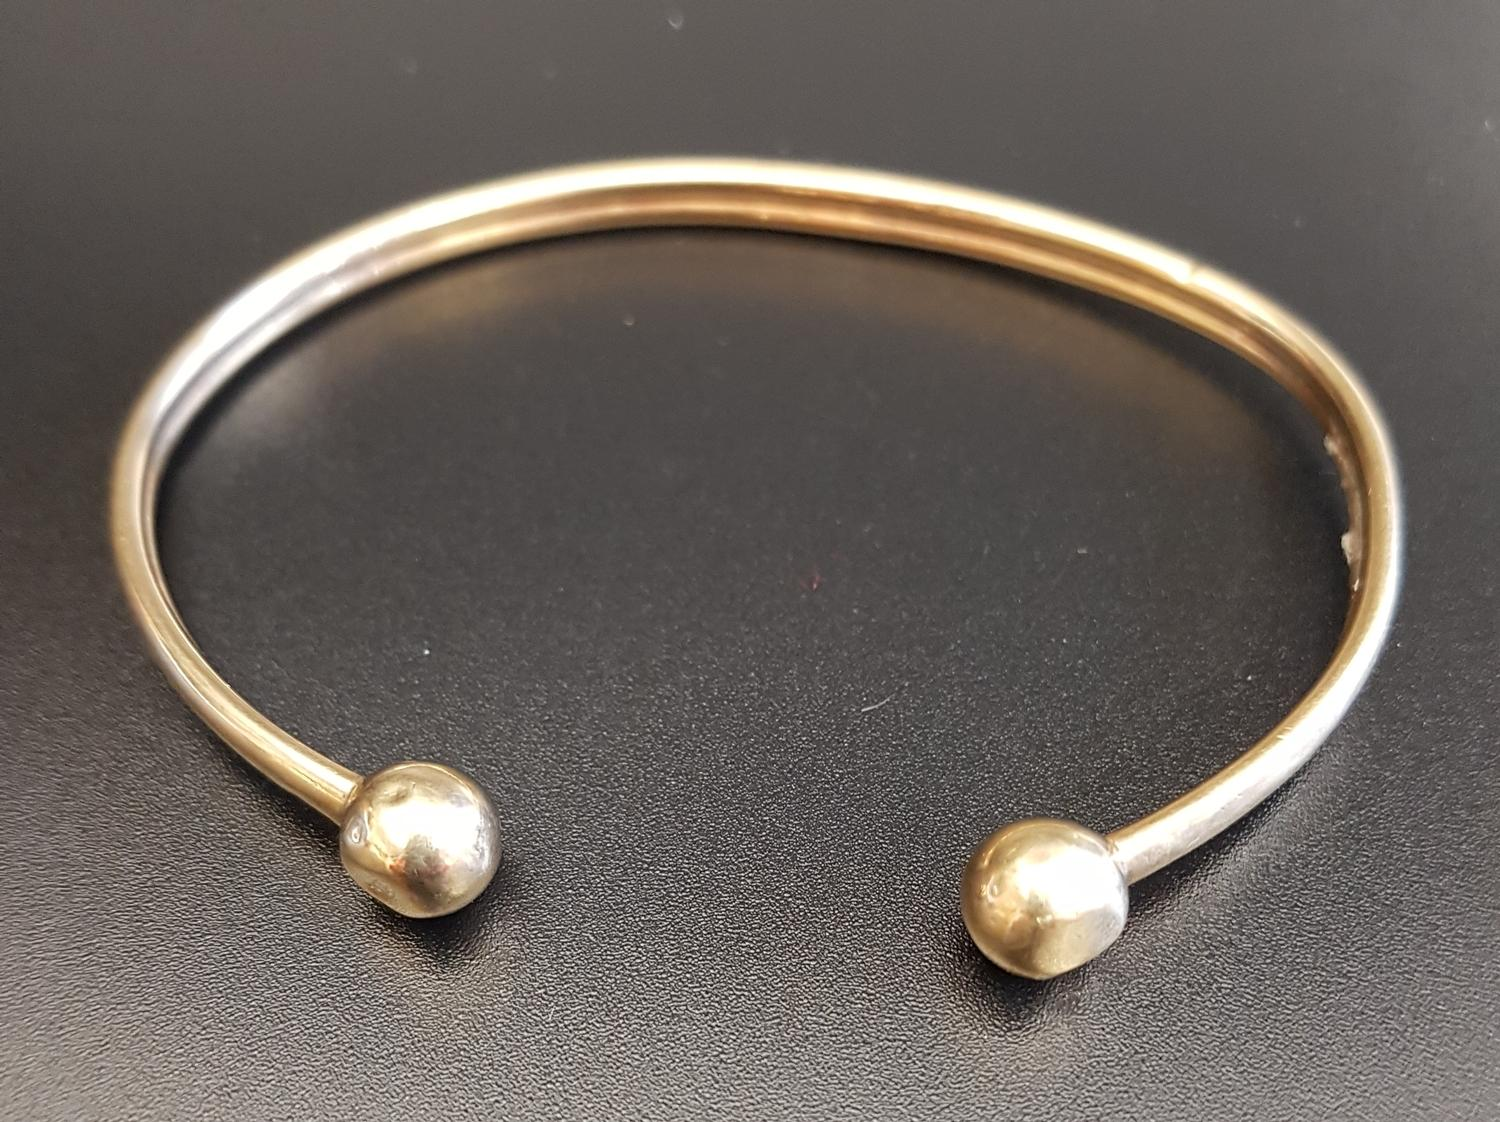 Lot 1 - NINE CARAT GOLD BANGLE with ball finials, approximately 5.7 grams